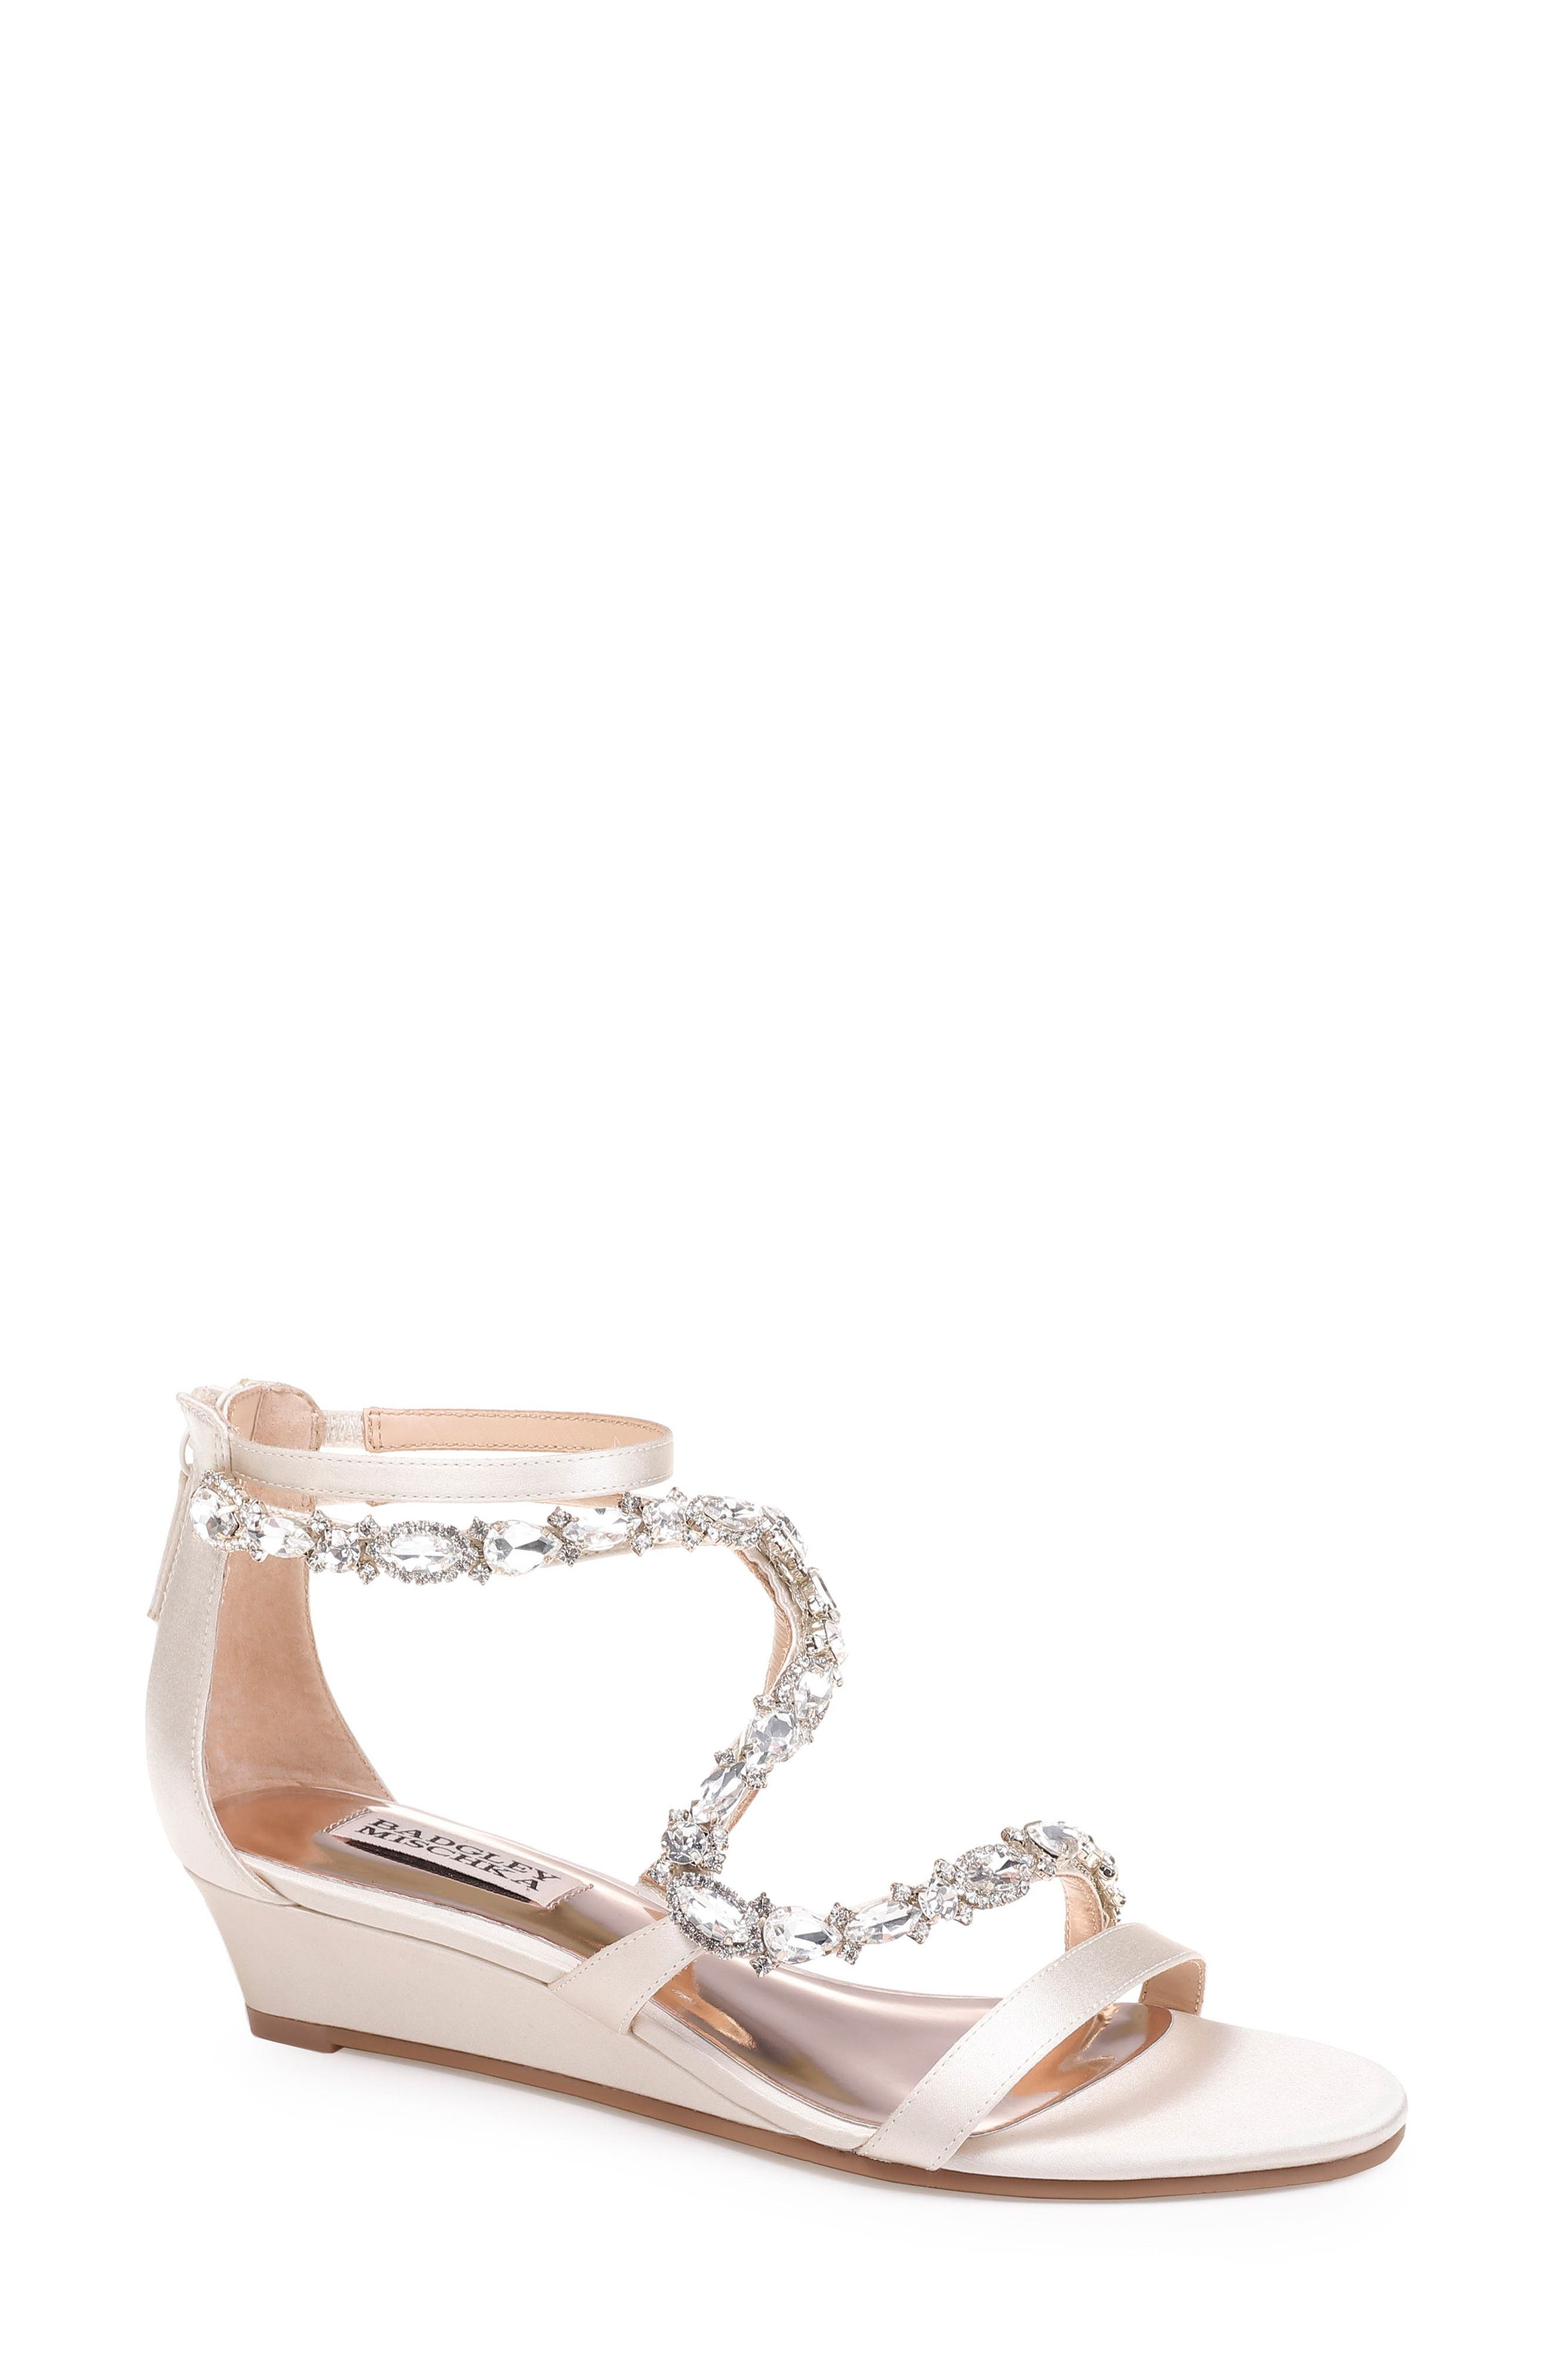 Sierra Strappy Wedge Sandal,                             Main thumbnail 2, color,